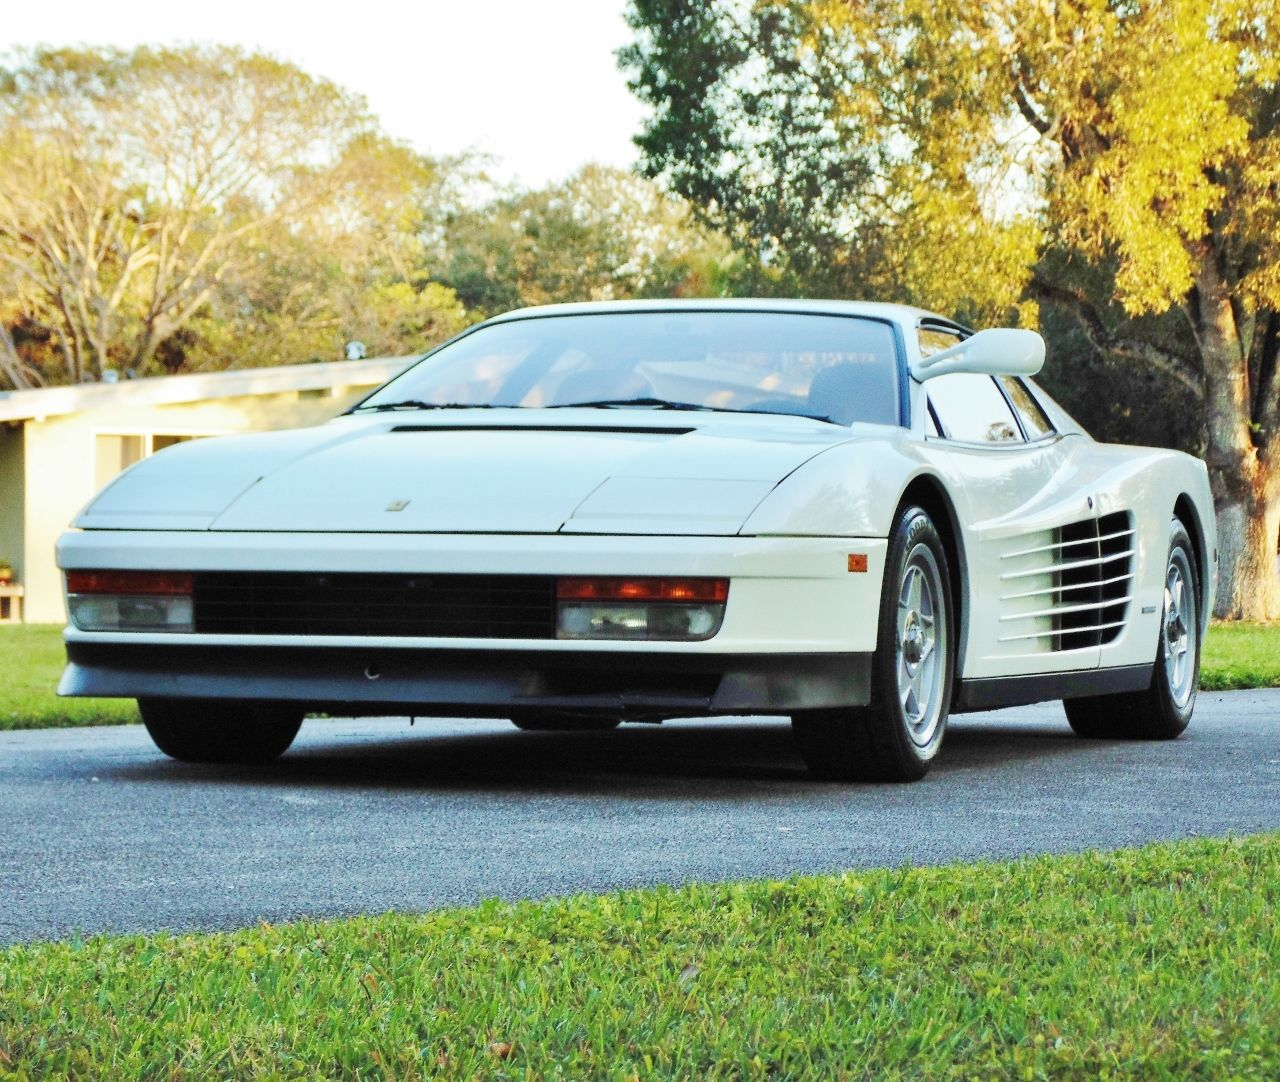 Miami Vice Ferrari Testarossa For Sale (6)